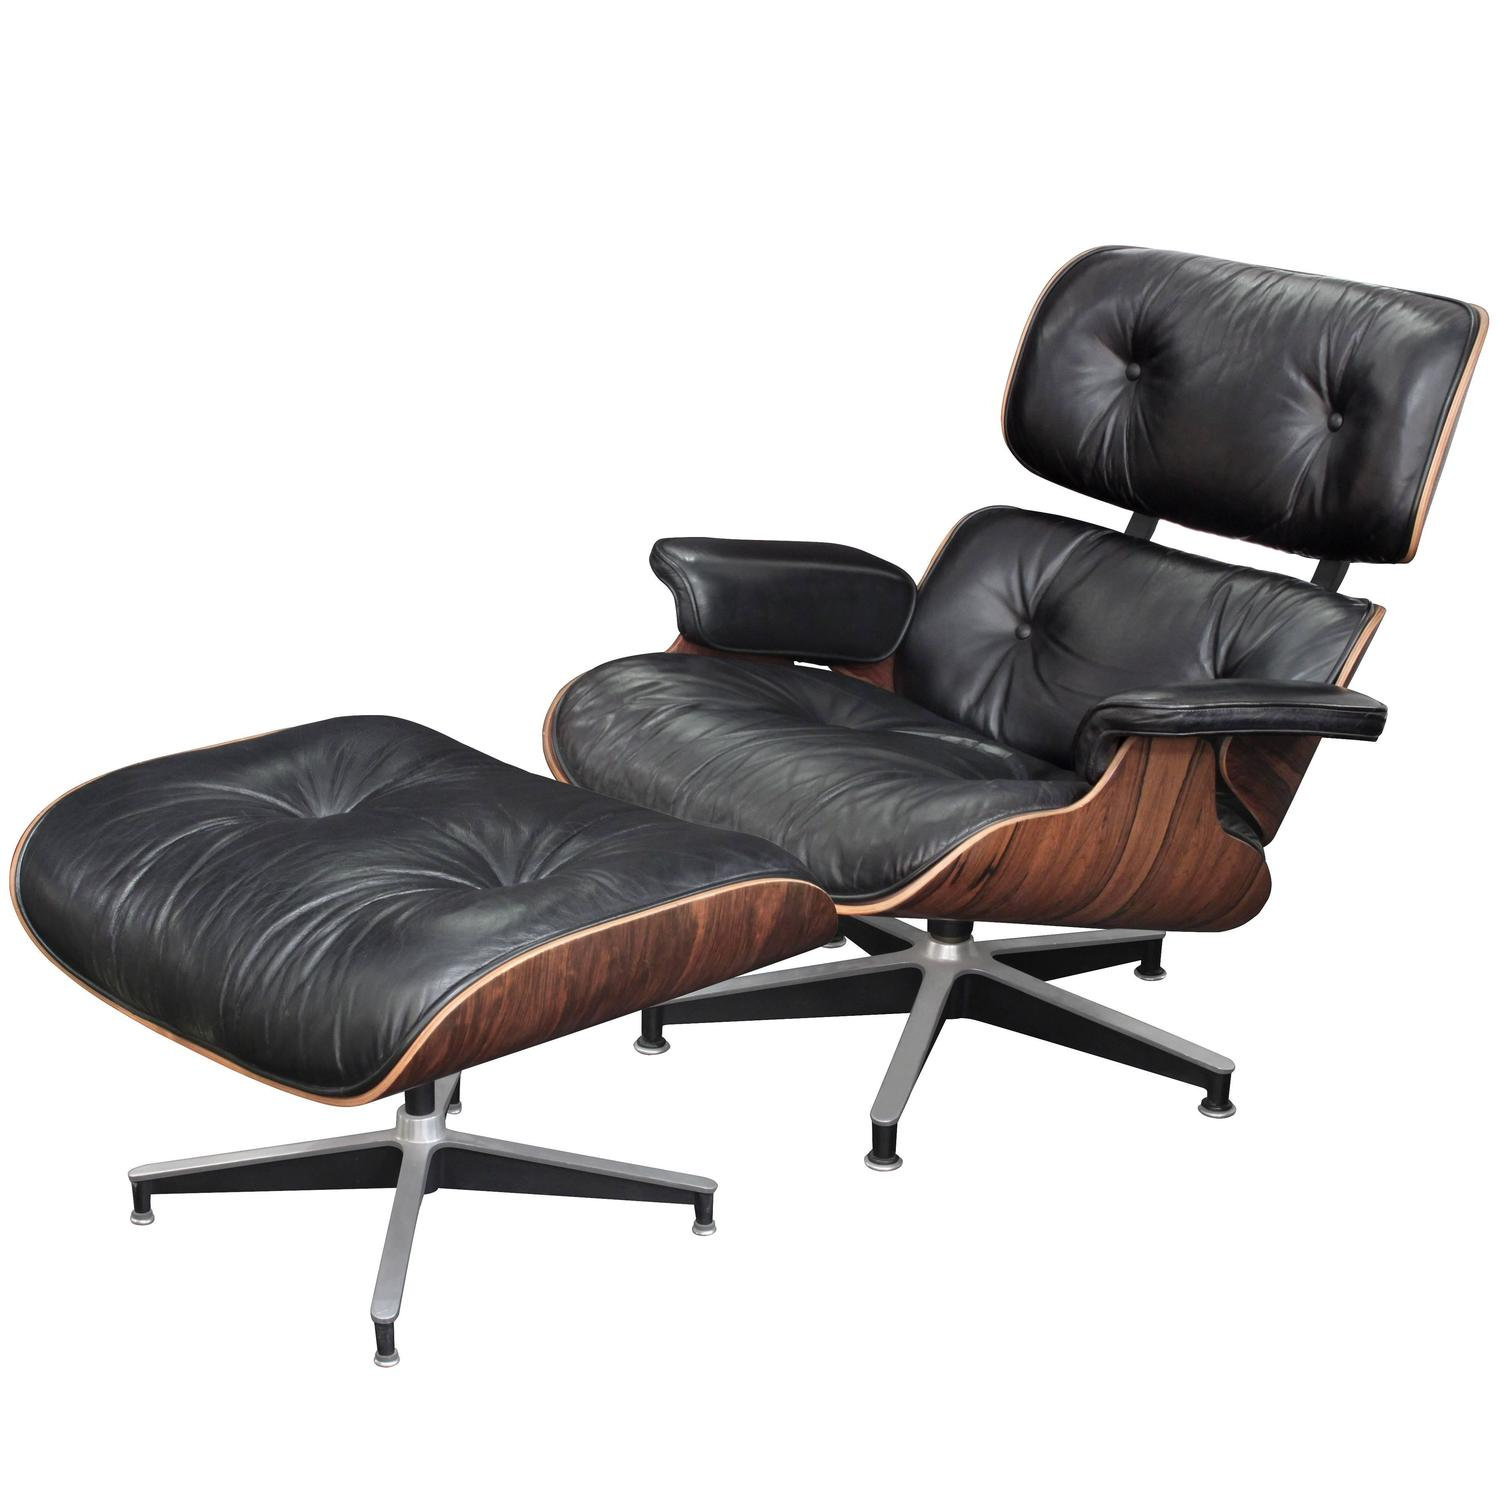 iconic lounge chair and ottoman by charles and ray eames for herman miller at 1stdibs. Black Bedroom Furniture Sets. Home Design Ideas